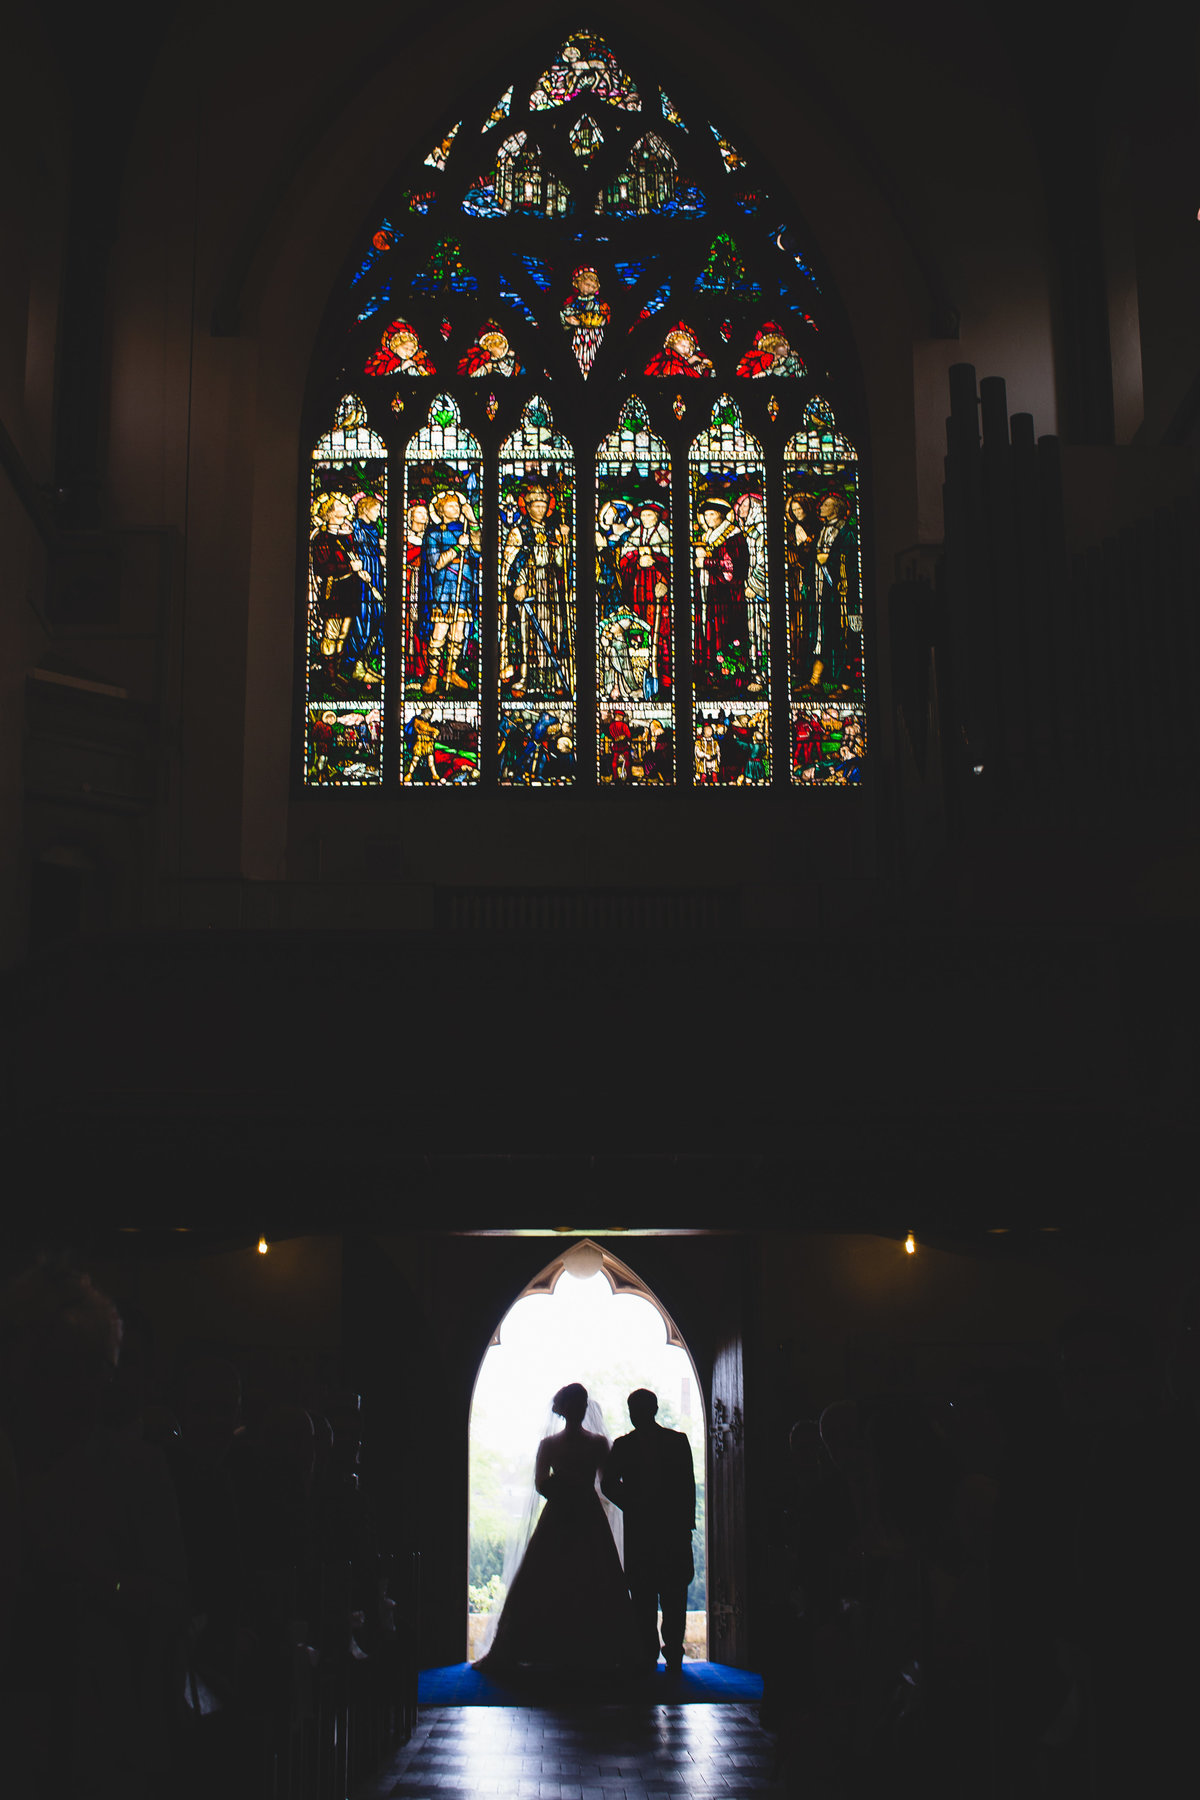 bride entering the church silhouette in front of stained glass window